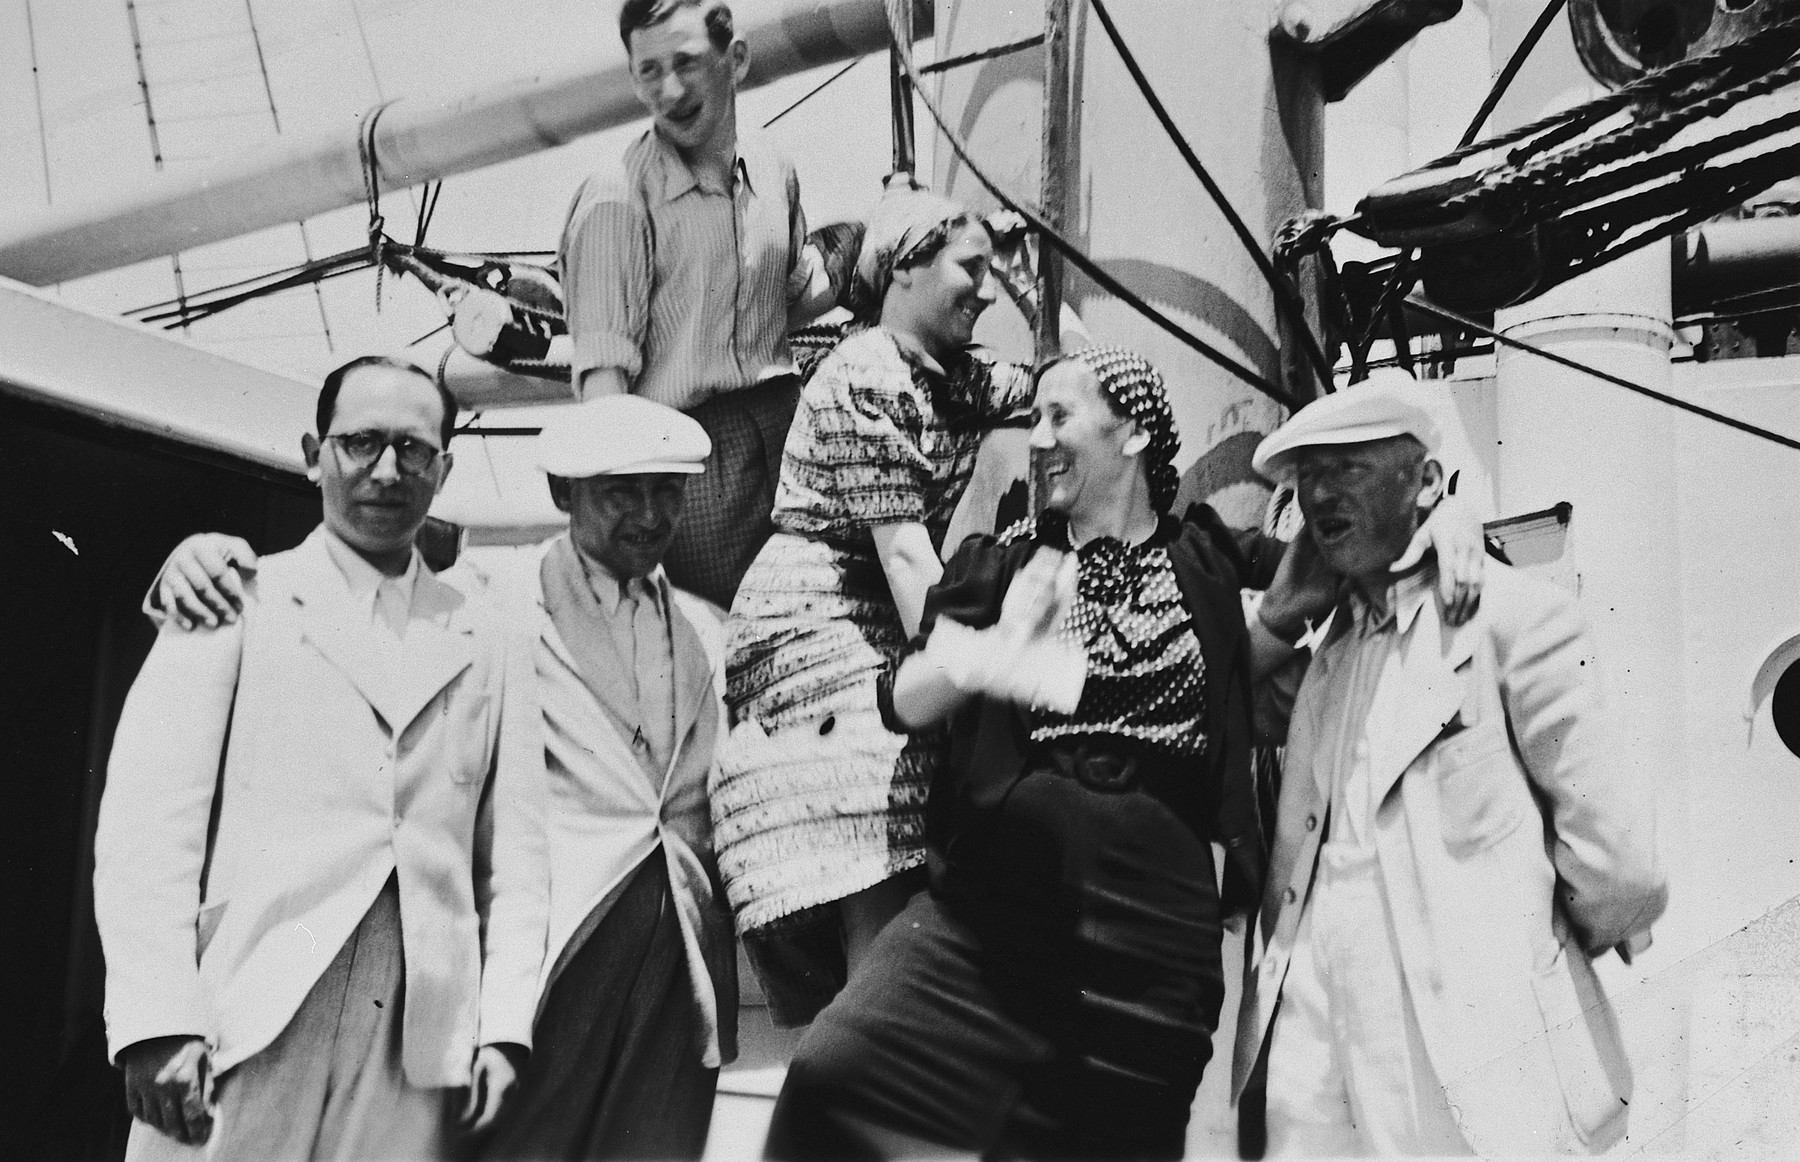 Jewish refugees from Breslau pose on the deck of the St. Louis.  From left to right are a friend from Breslau, Kurt Marcus, Ernst Meyer, Ilse Marcus, Elfriede Meyer and Berthold Meyer.